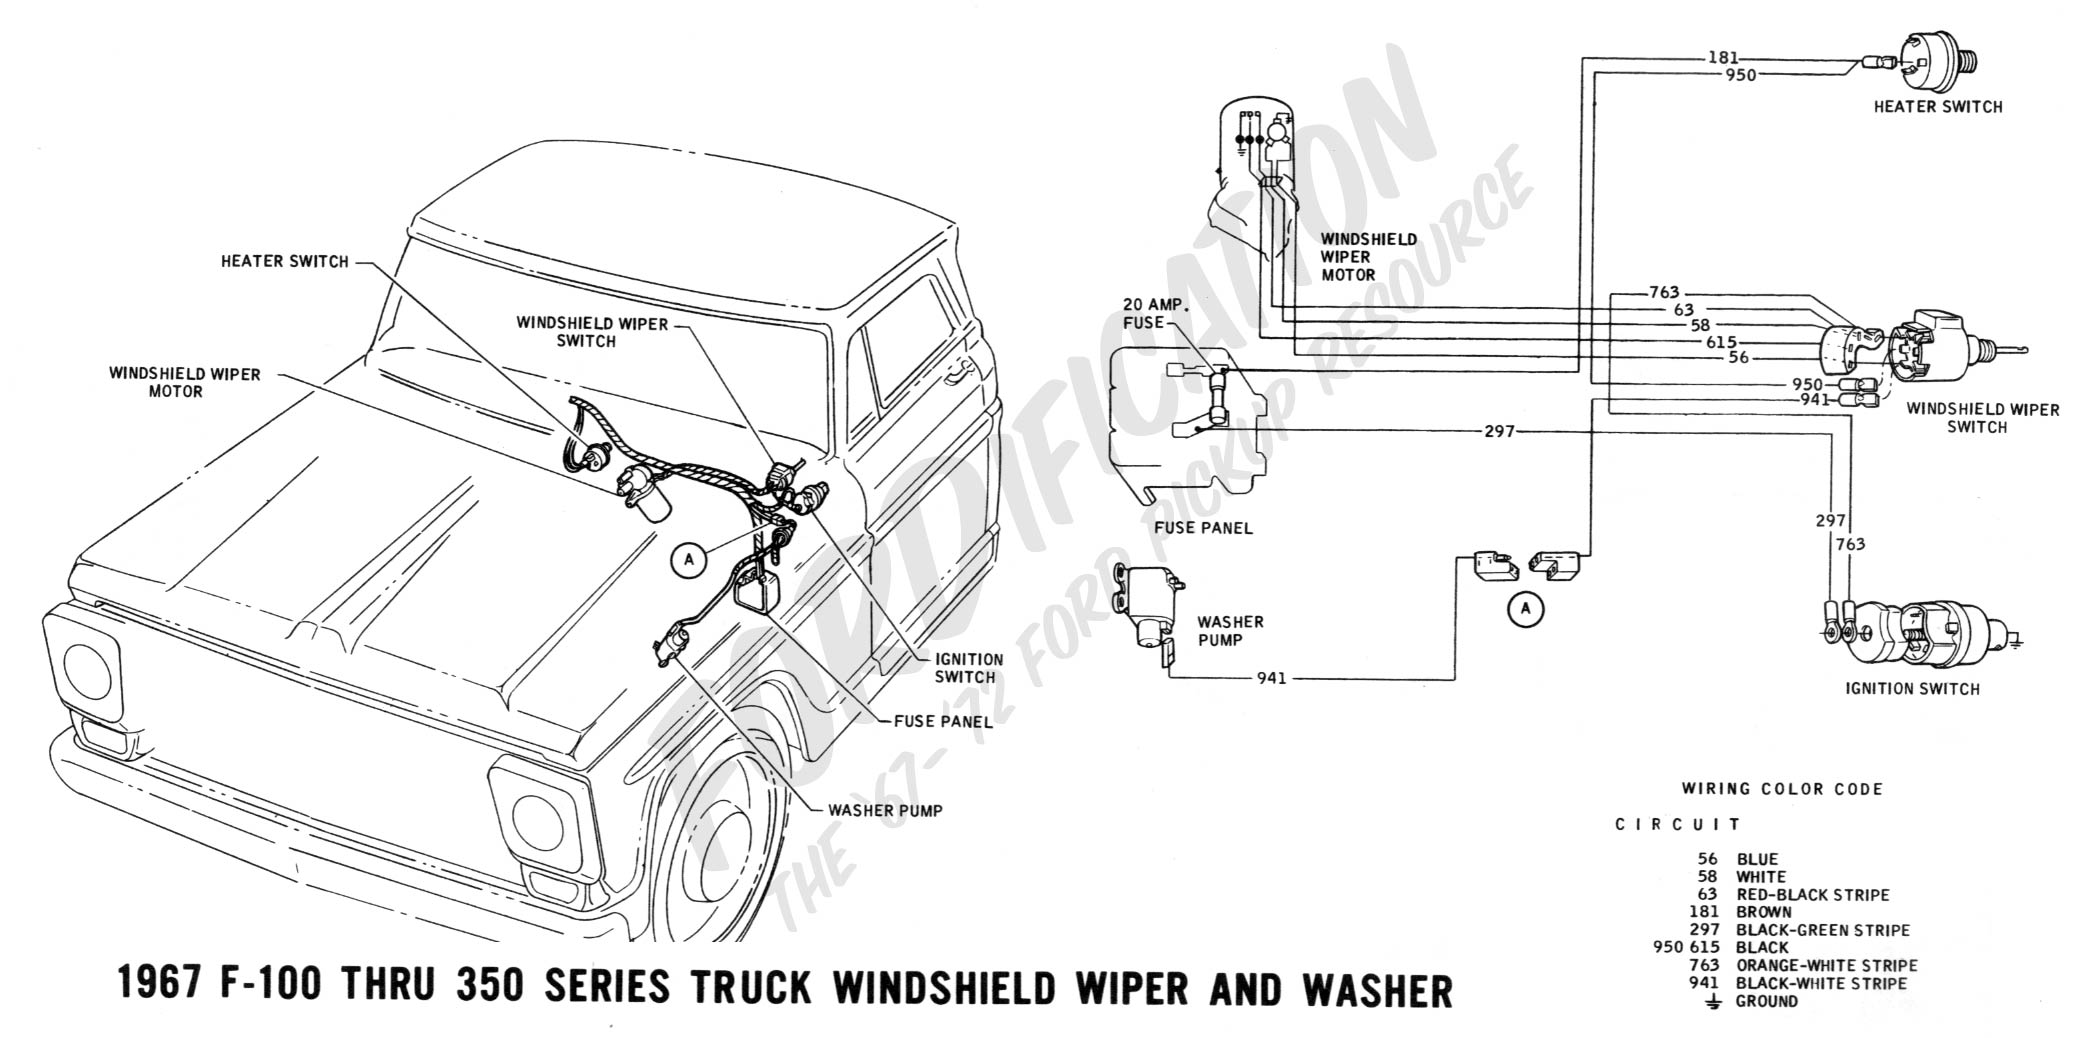 wiring 1967wipers ford truck technical drawings and schematics section h wiring 1999 ford explorer rear wiper wiring diagram at eliteediting.co